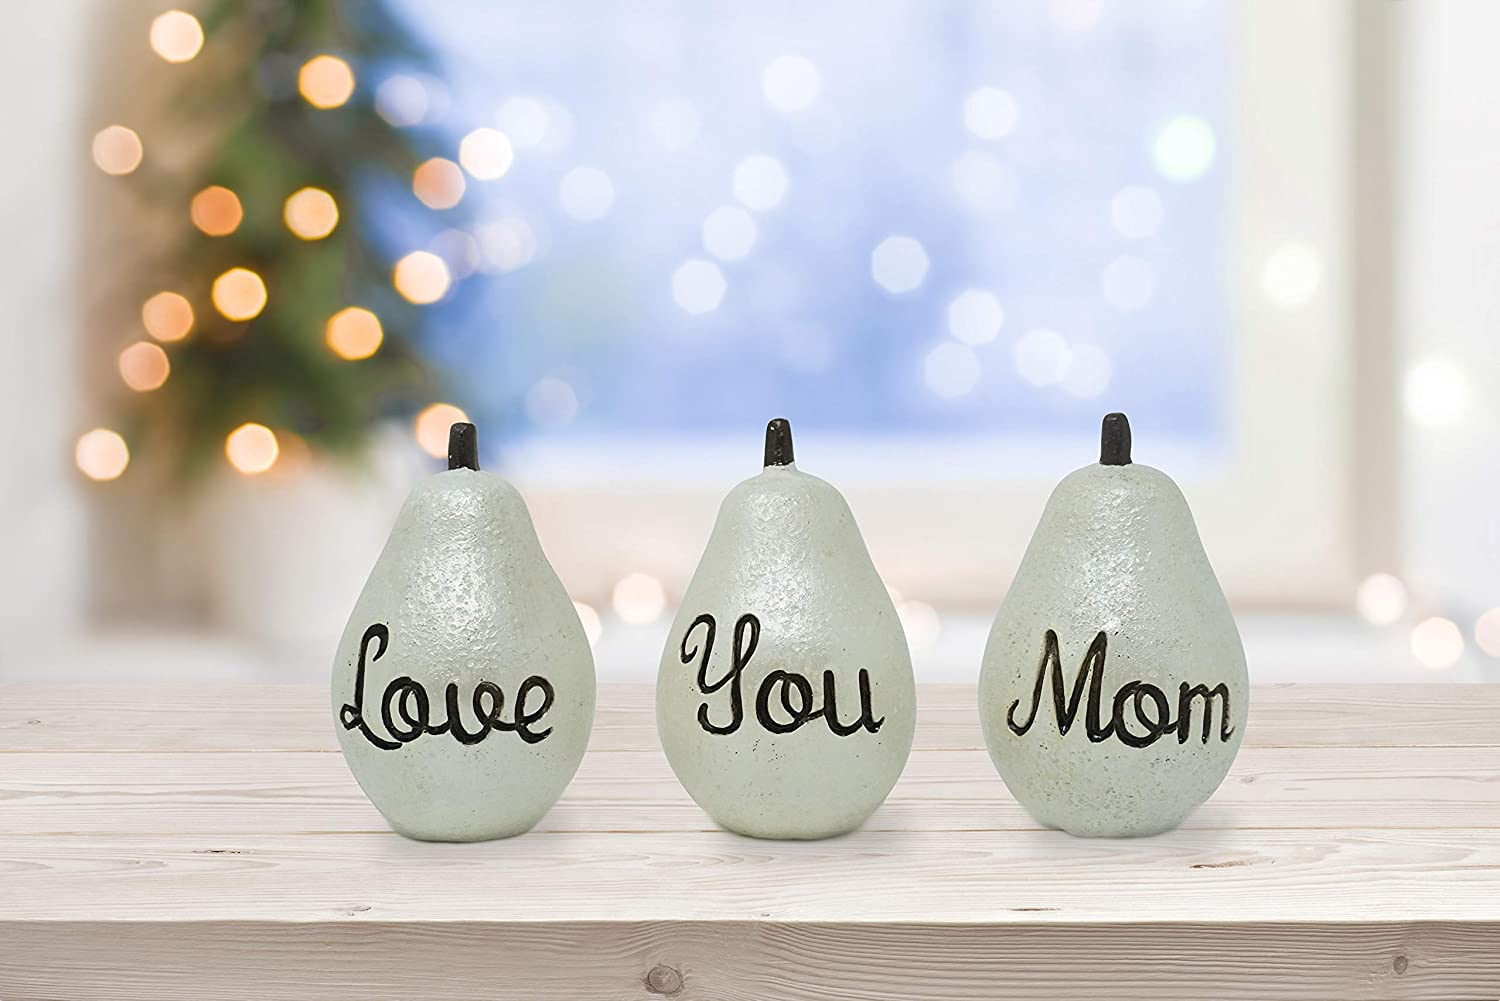 FOLE Love You Mom Pears - Gifts for Mom - Birthday Anniversary Mother Wife Her Sister Daughter Decor Presents - Mothers Day Birthday Anniversary Hallmark Keepsake, Vintage Pearl , 4x2.5 Inches